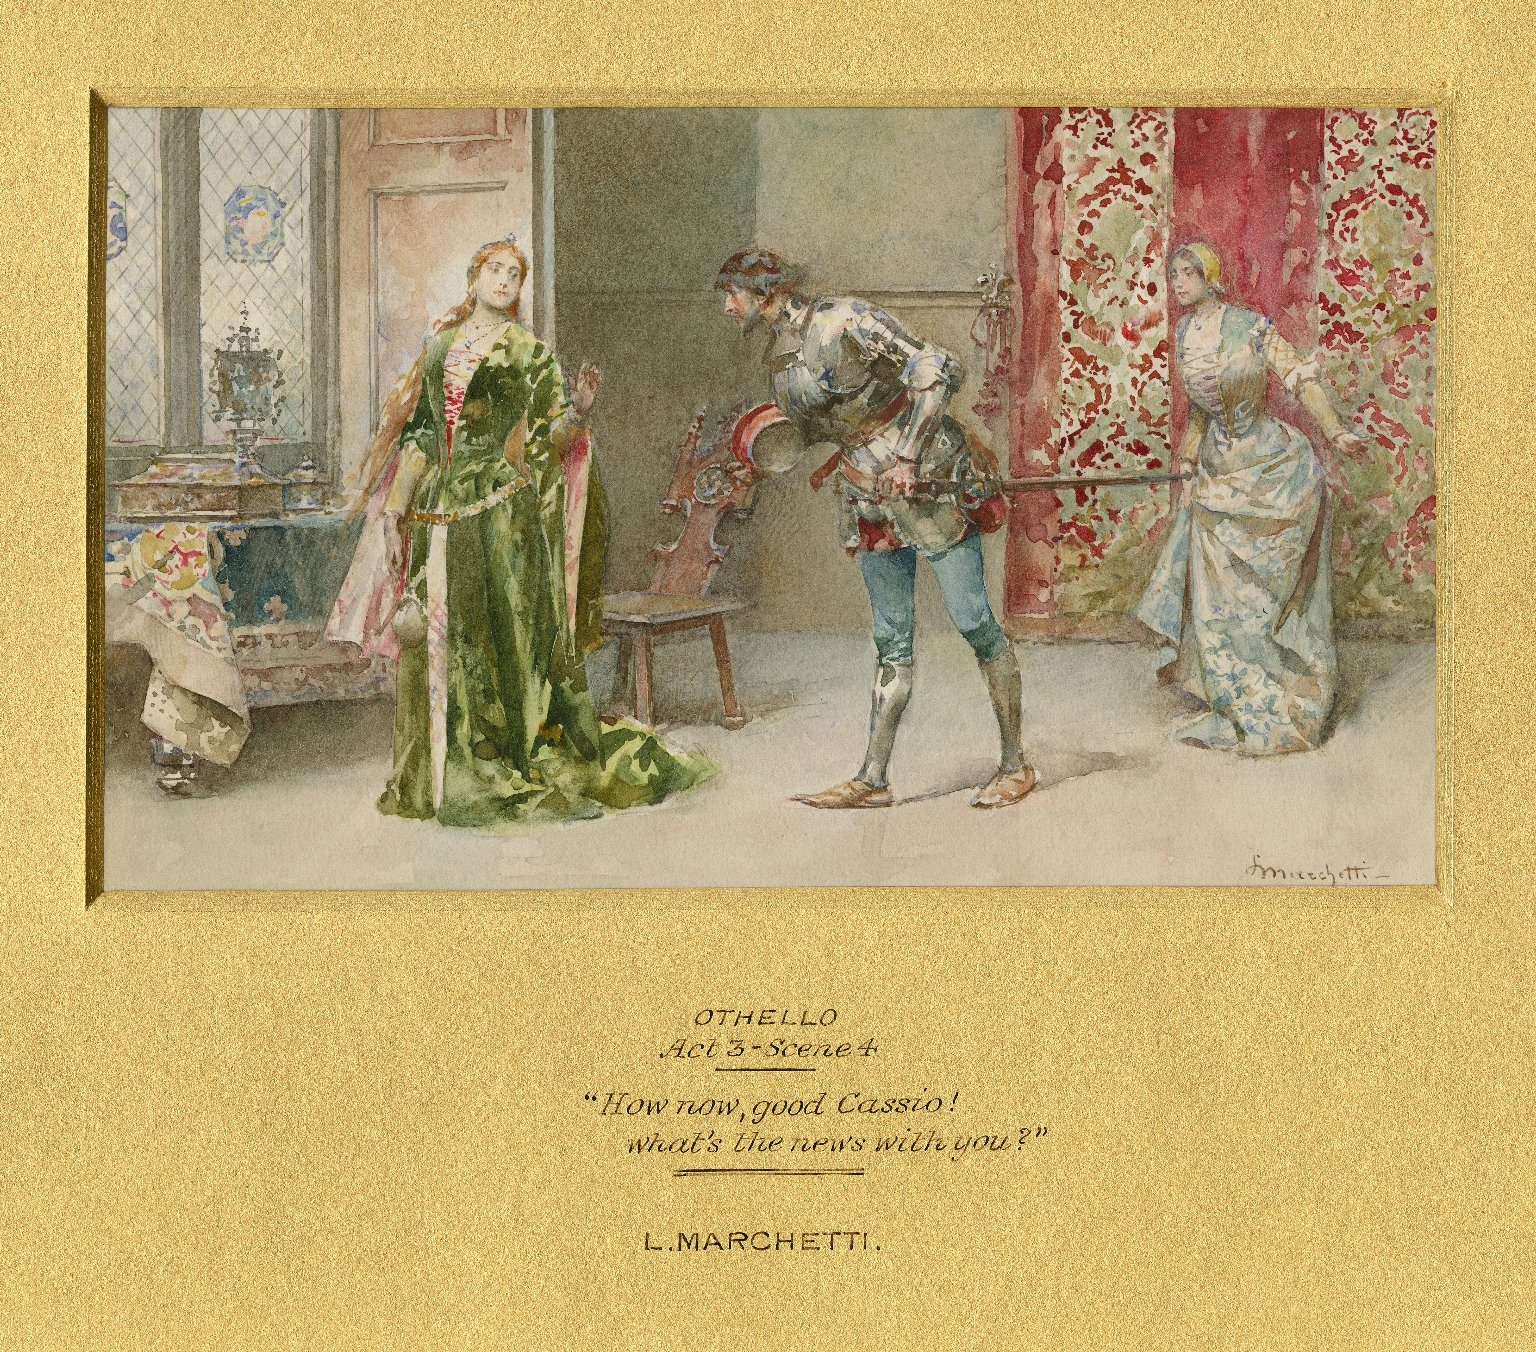 """Othello, Act 3, scene 4, """"How now good Cassio! what's the news with you?"""" [graphic] / L. Marchetti."""